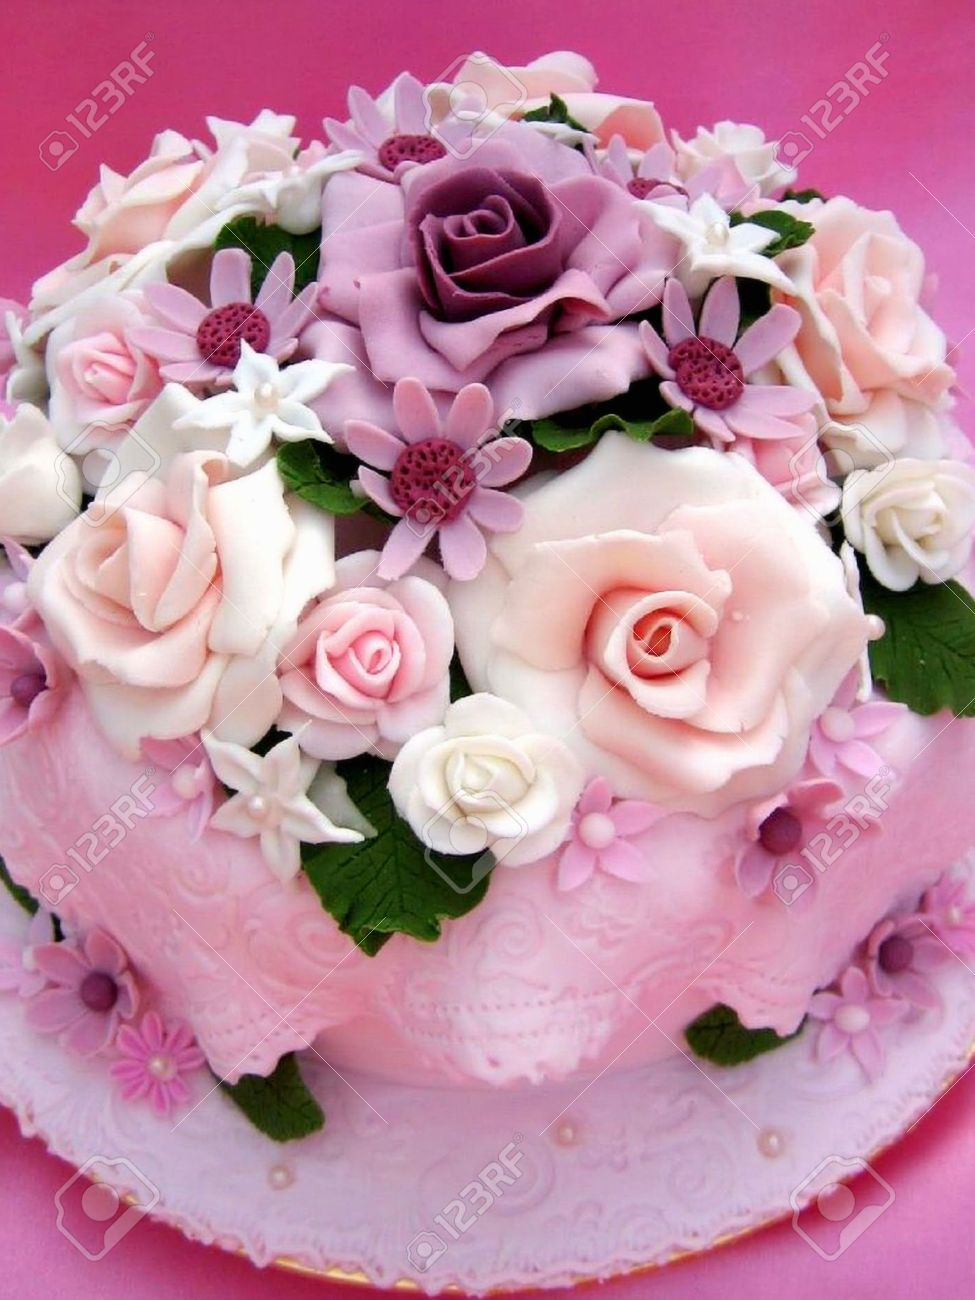 Flower Colorful Birthday Cake